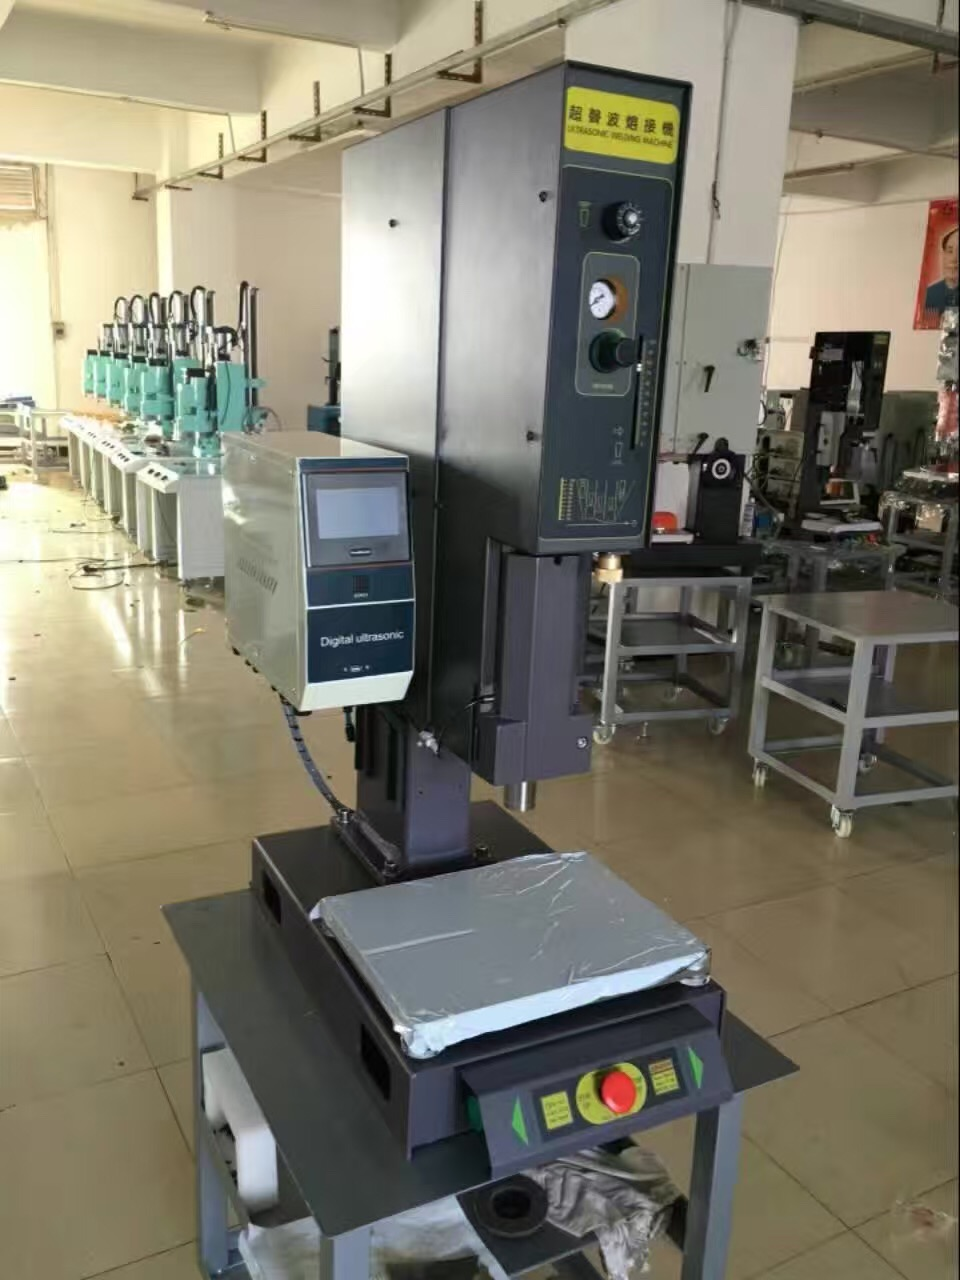 1500W/15khz ultrasonic plastic welding equipment,,1500W Intelligent Digital Ultrasonic Welding Machine,welder machine  цены